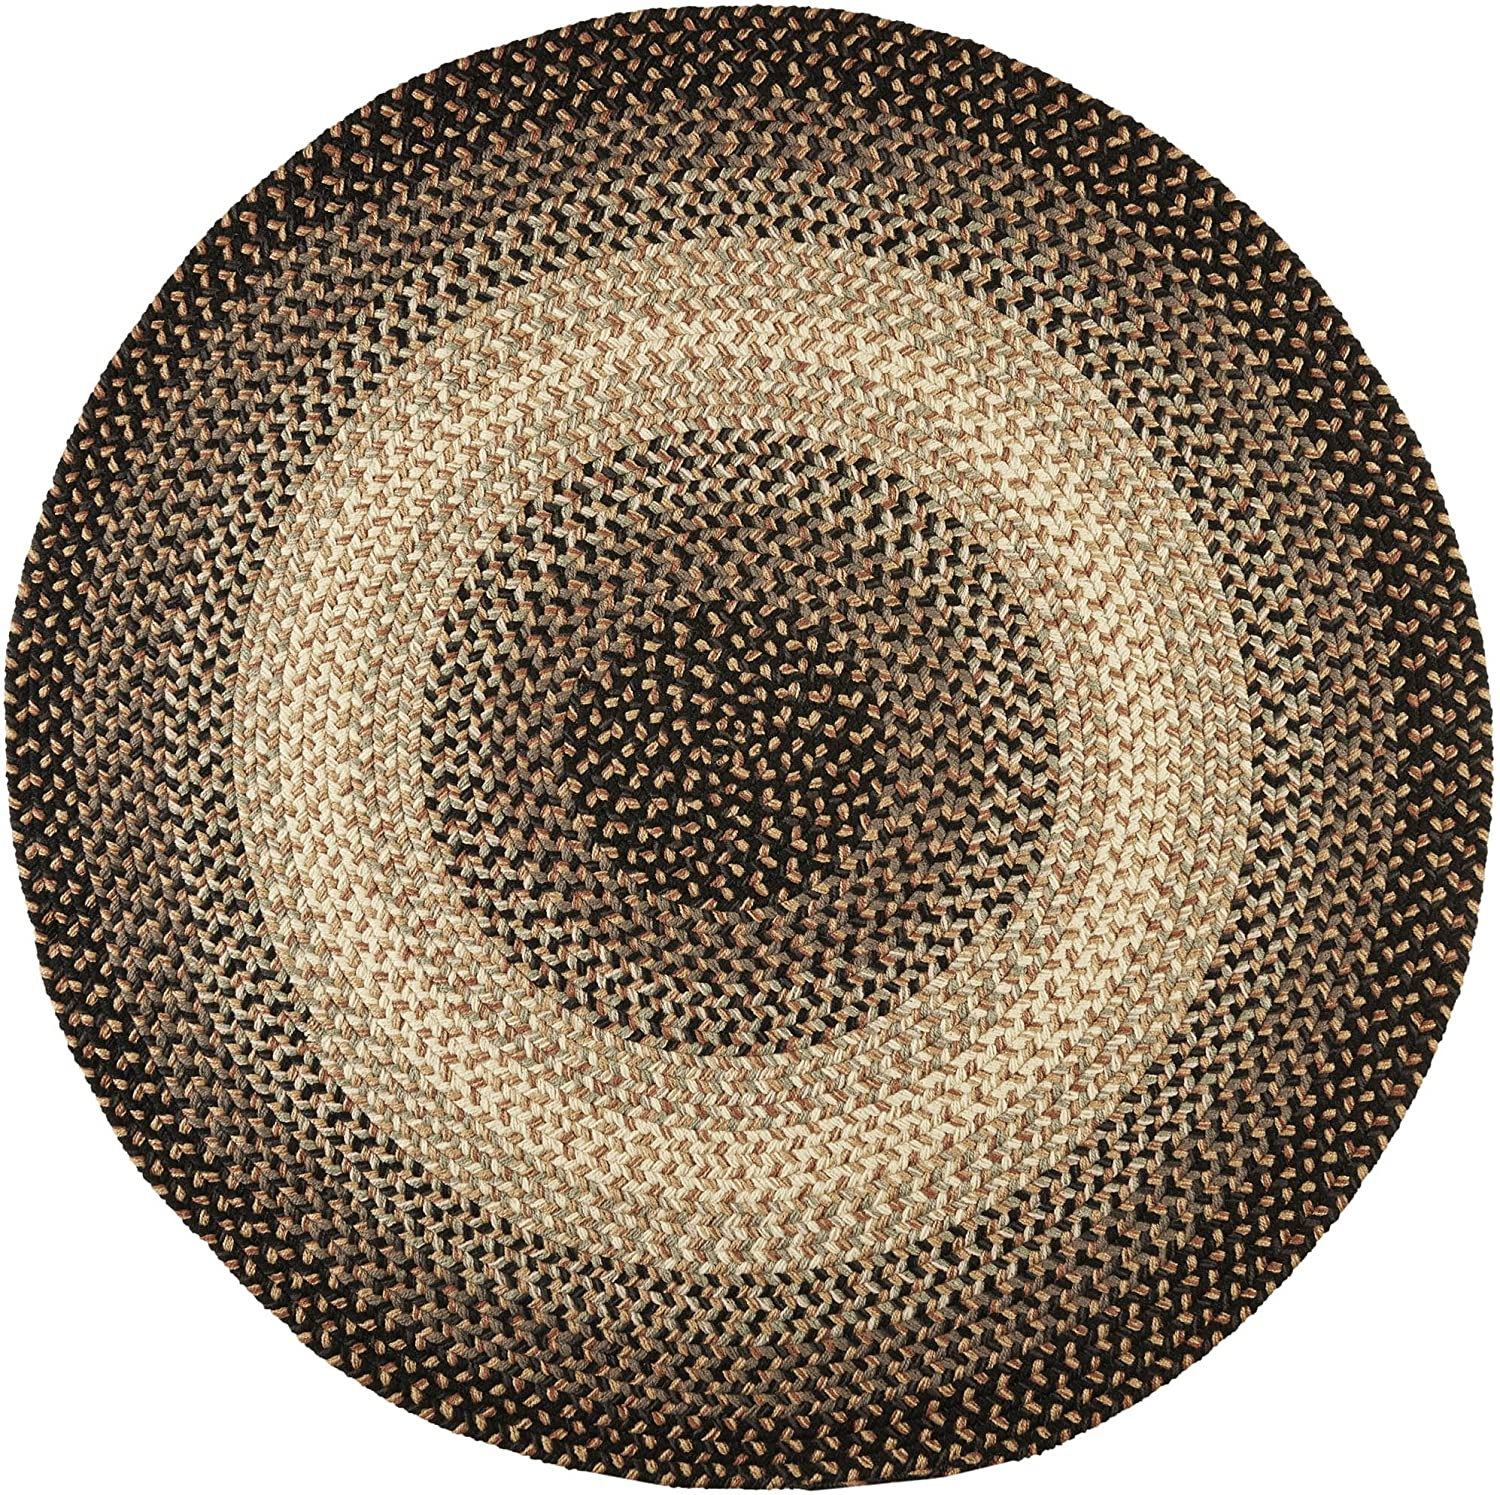 Super Area Rugs Classic Hartford Braided Rug for Indoor/Outdoor Use, Charcoal,4' X 4' Round